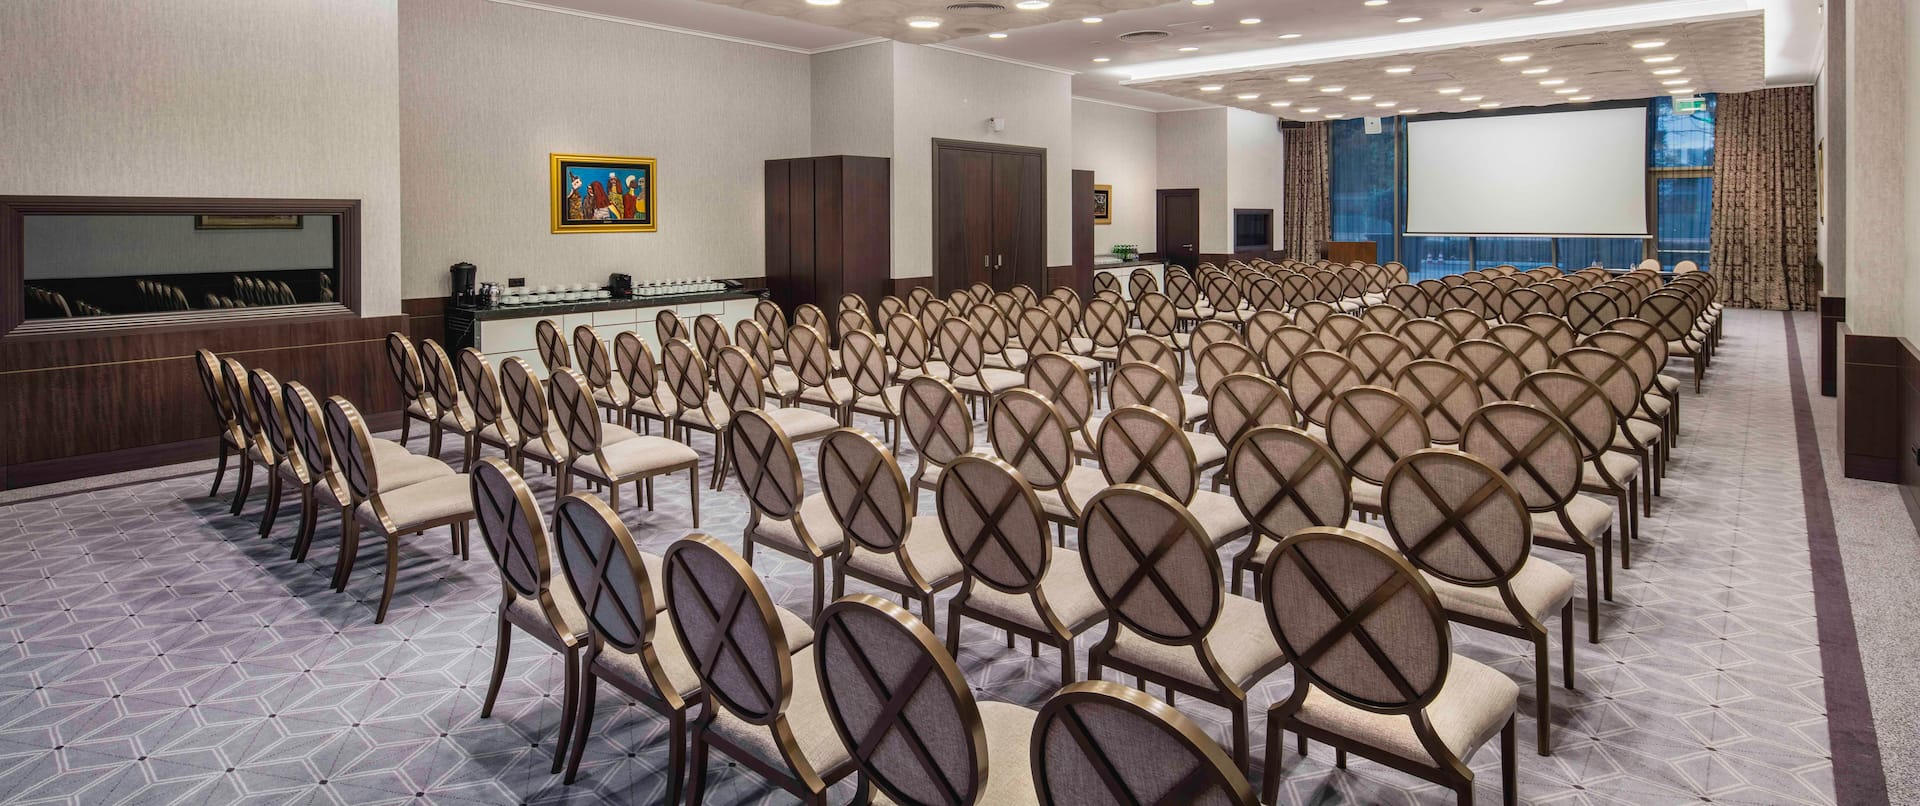 Princess Jelena Meeting Room Arranged Theater Style With Rows of Chairs Facing Projector Screen and Large WIndow